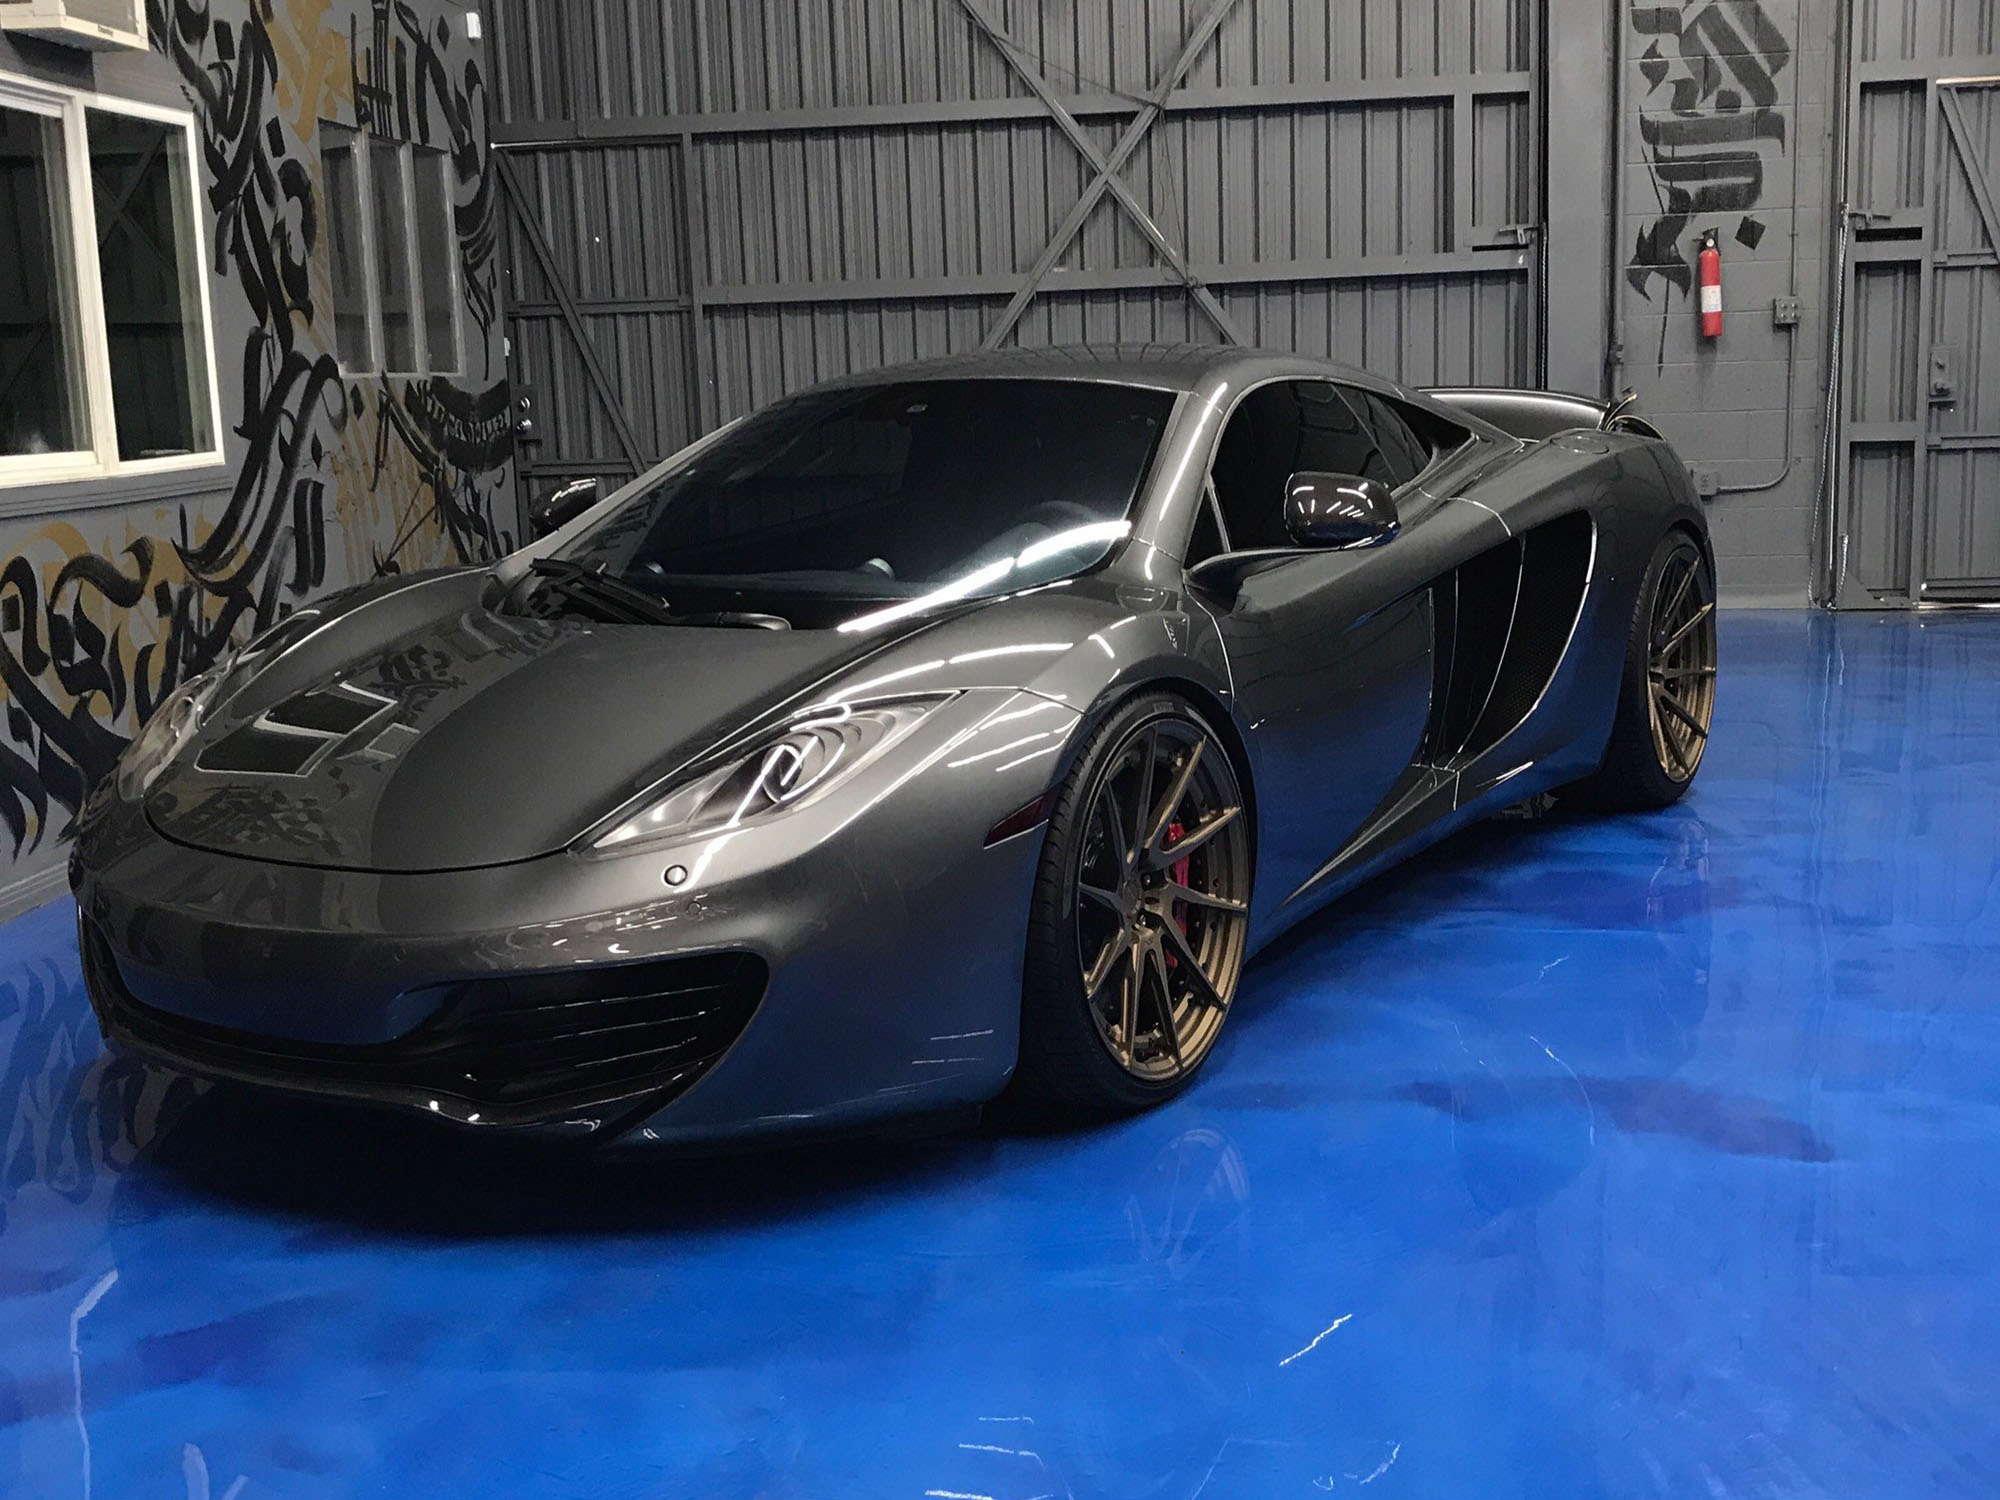 2012 McLaren MP4-12C in Graphite Grey